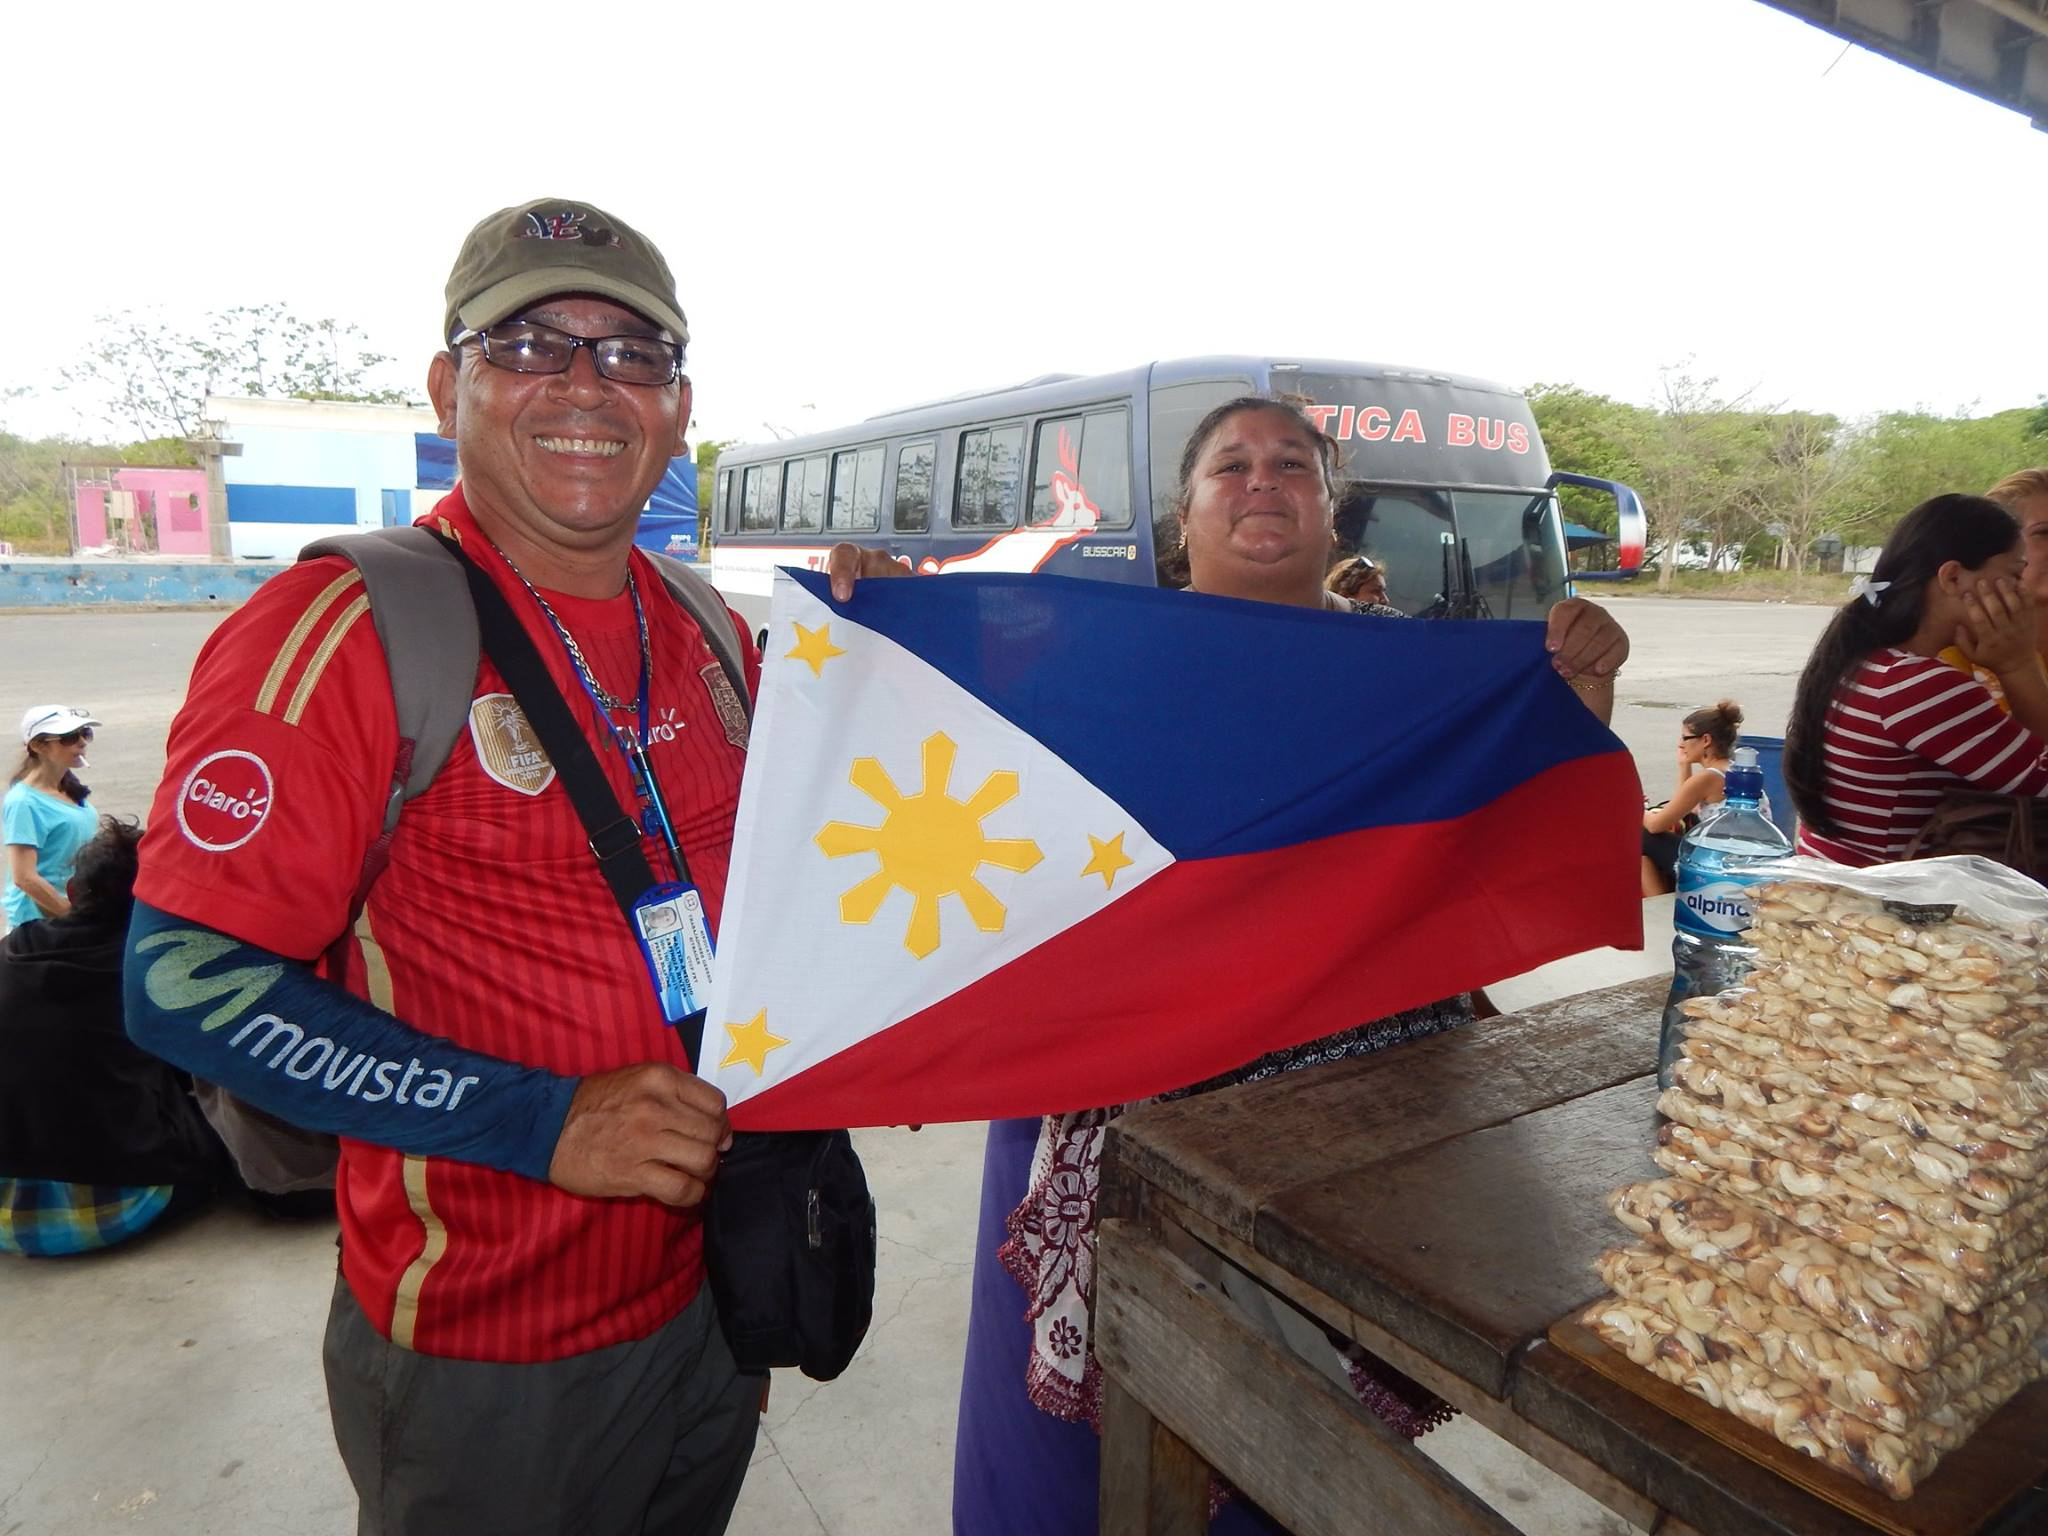 Crossing the Border of Costa Rica and Nicaragua